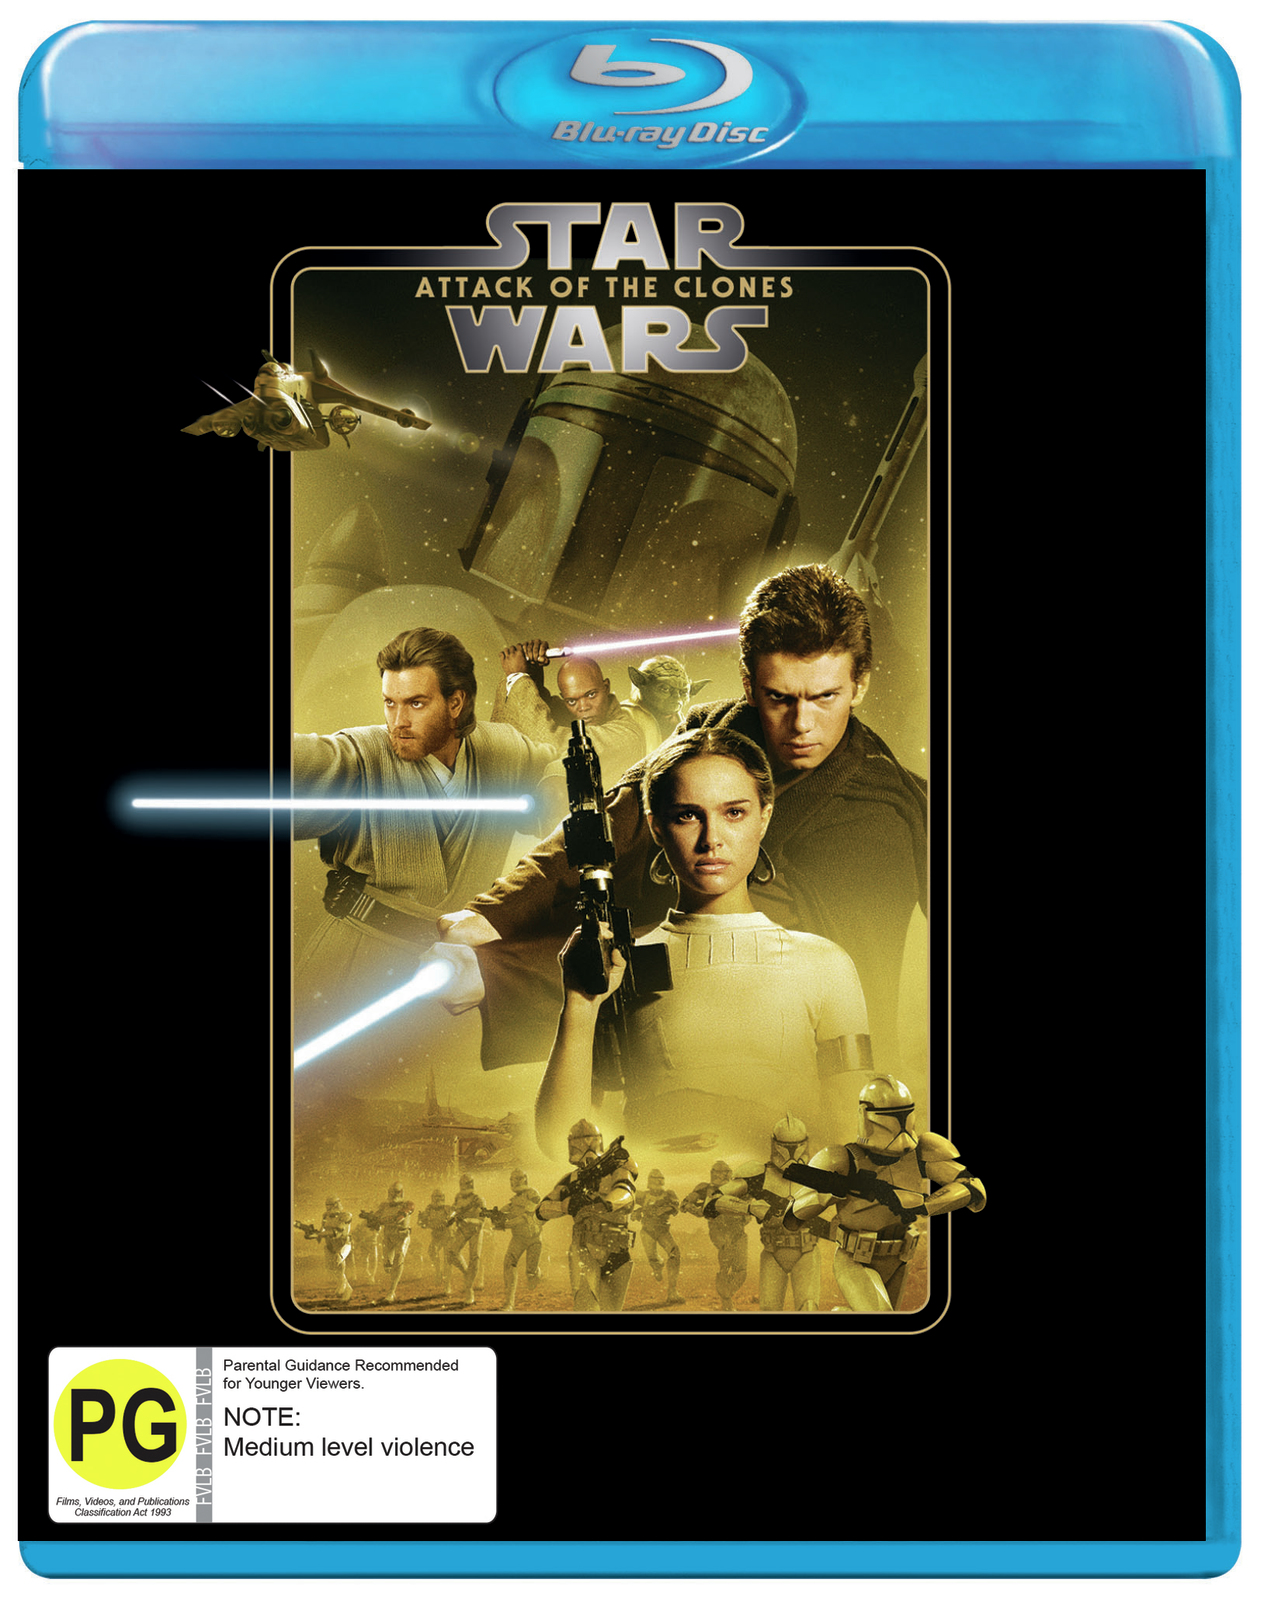 Star Wars: Episode II - Attack of the Clones on Blu-ray image